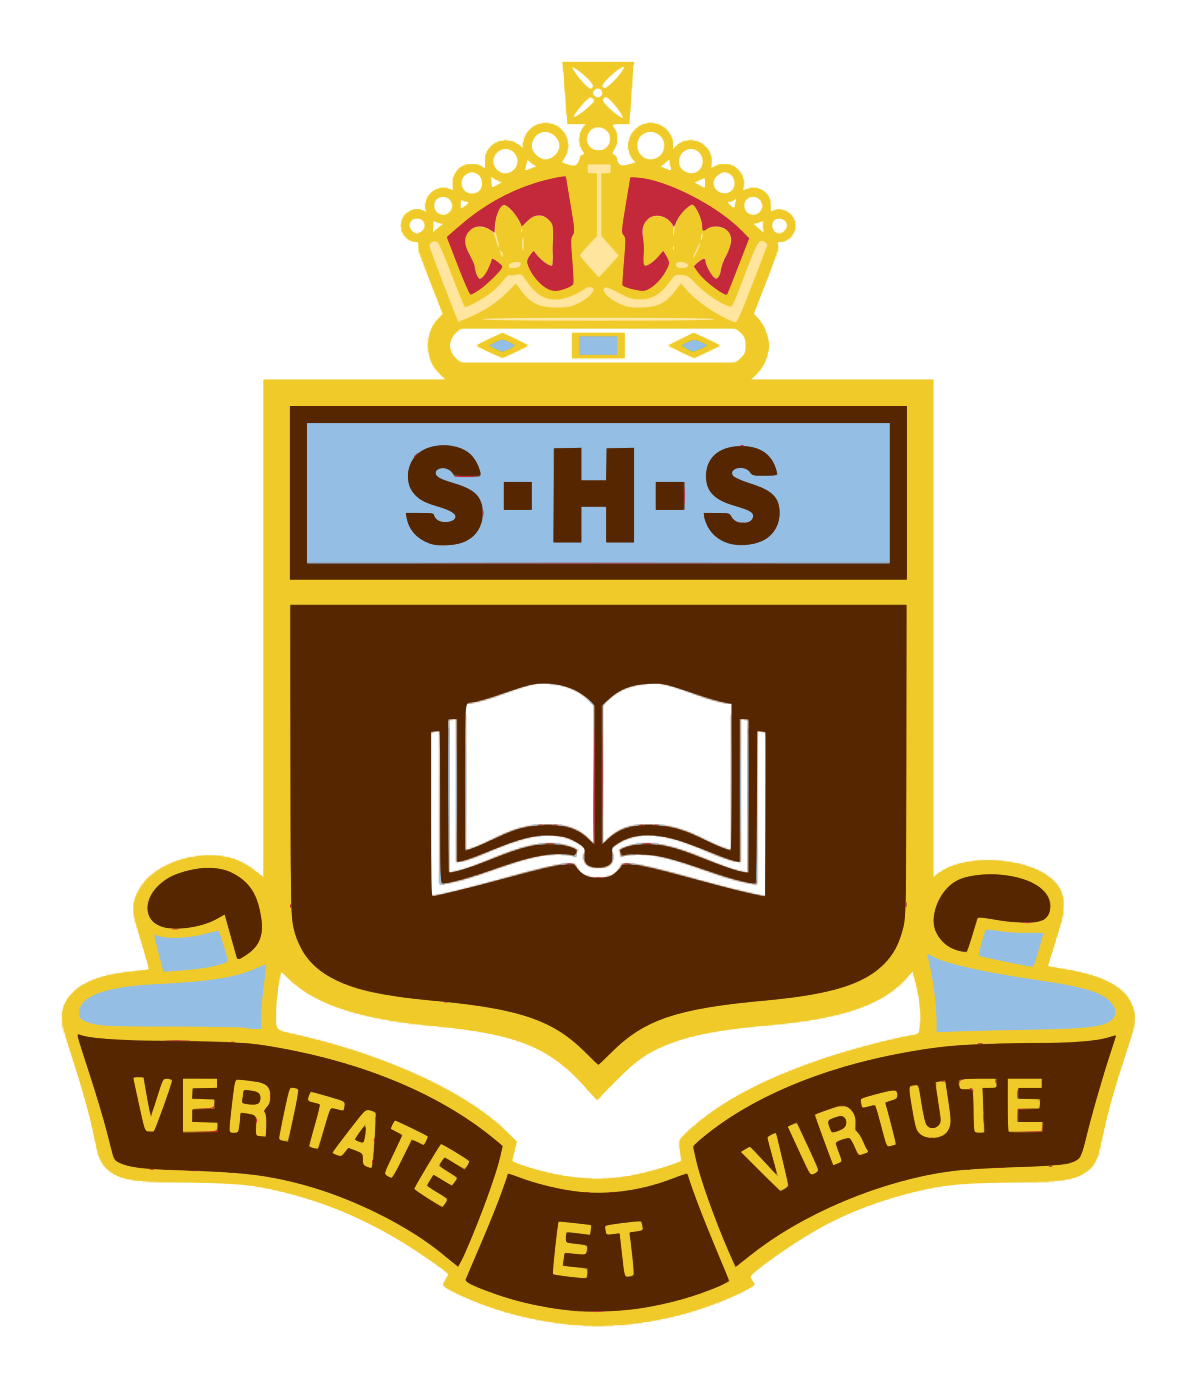 Senior high school clipart clip free stock Sydney Boys High School - Wikipedia clip free stock